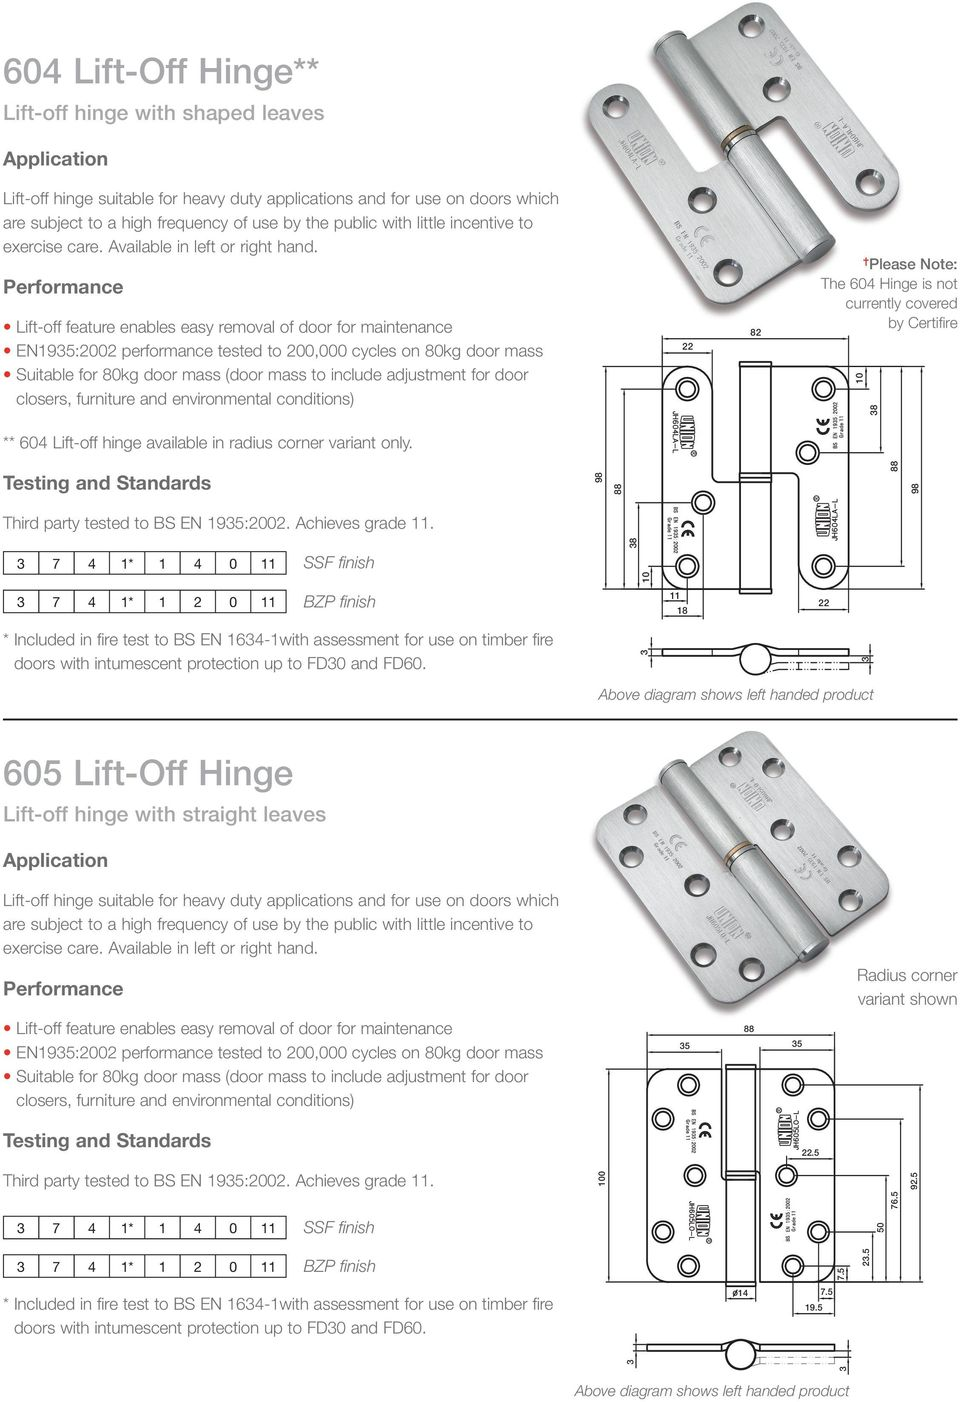 Lift-off feature enables easy removal of door for maintenance EN195:2002 performance tested to 200,000 cycles on 80kg door mass Suitable for 80kg door mass (door mass to include adjustment for door